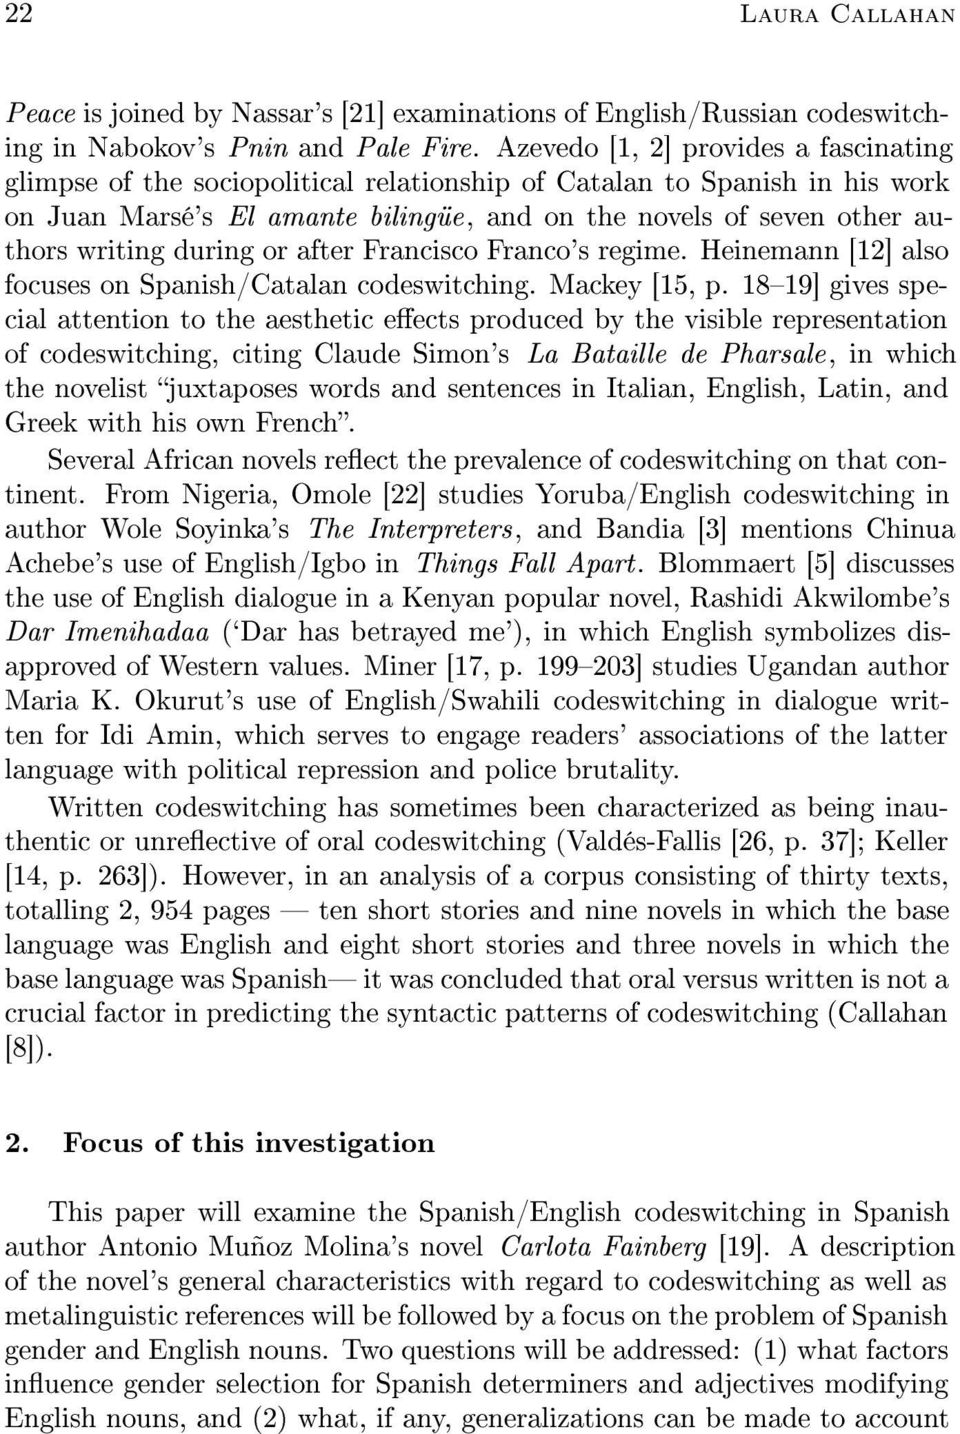 during or after Francisco Franco's regime. Heinemann [12] also focuses on Spanish/Catalan codeswitching. Mackey [15, p.